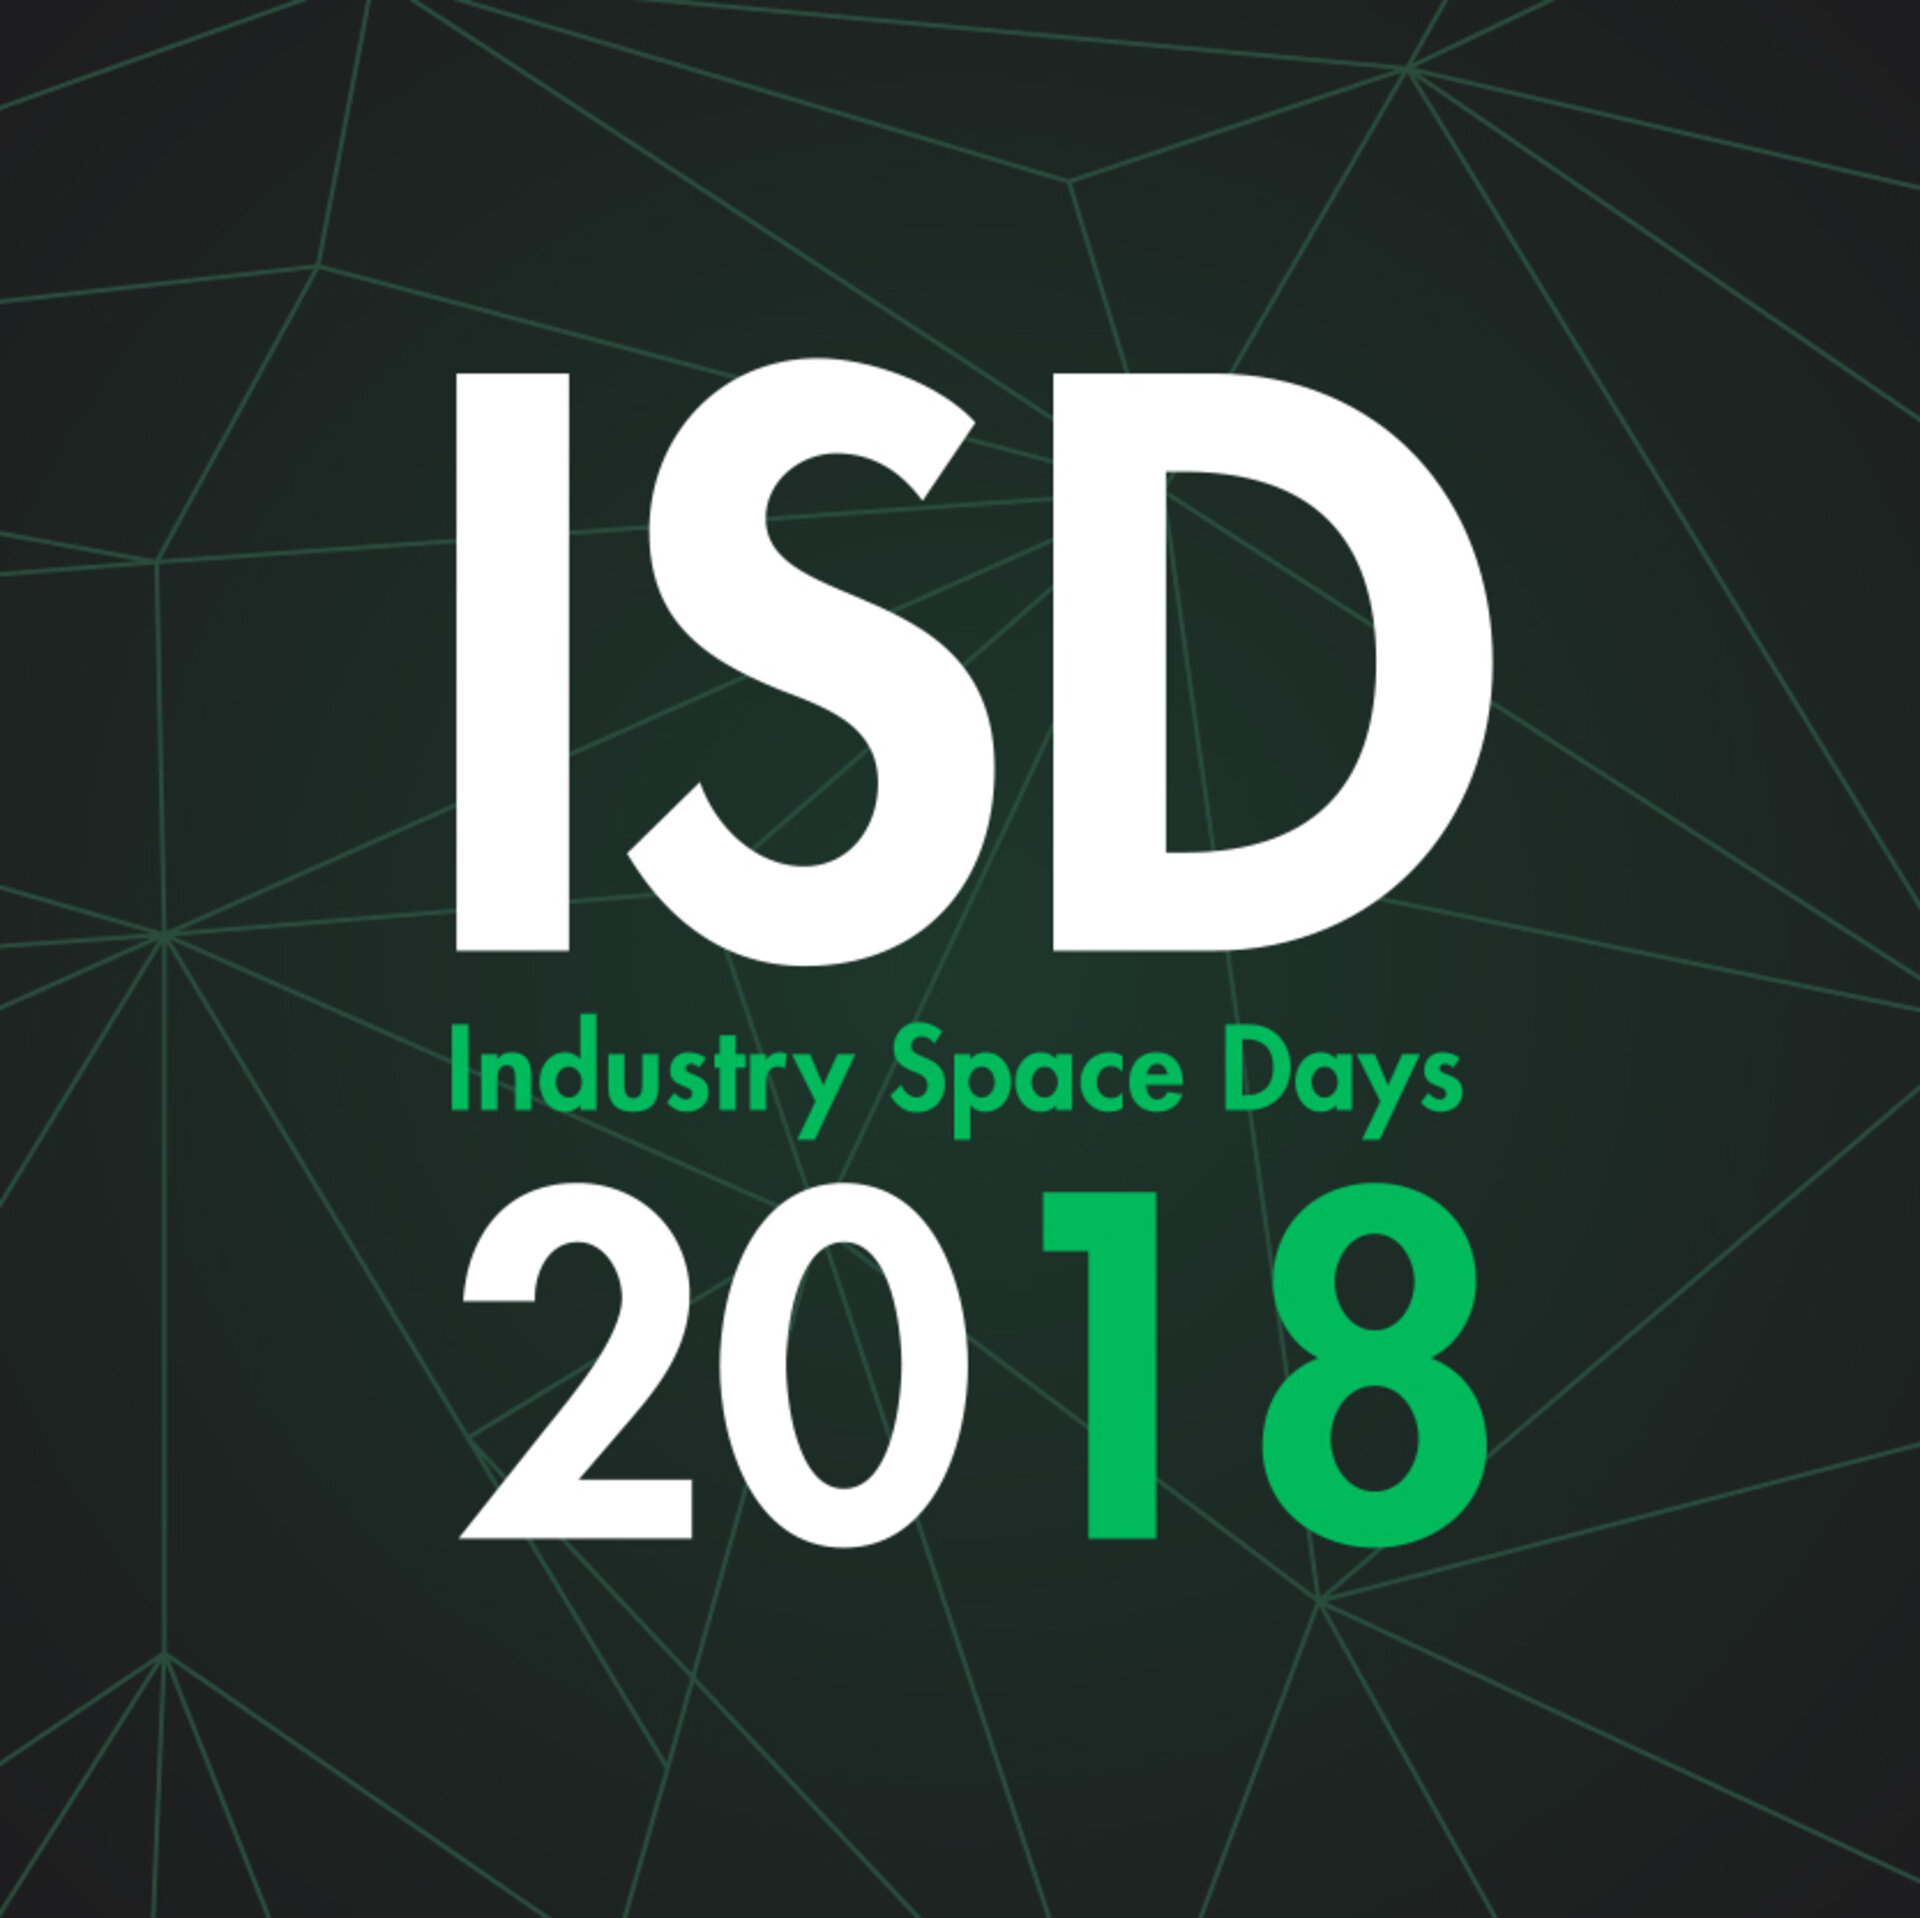 Industry Space Days 2018